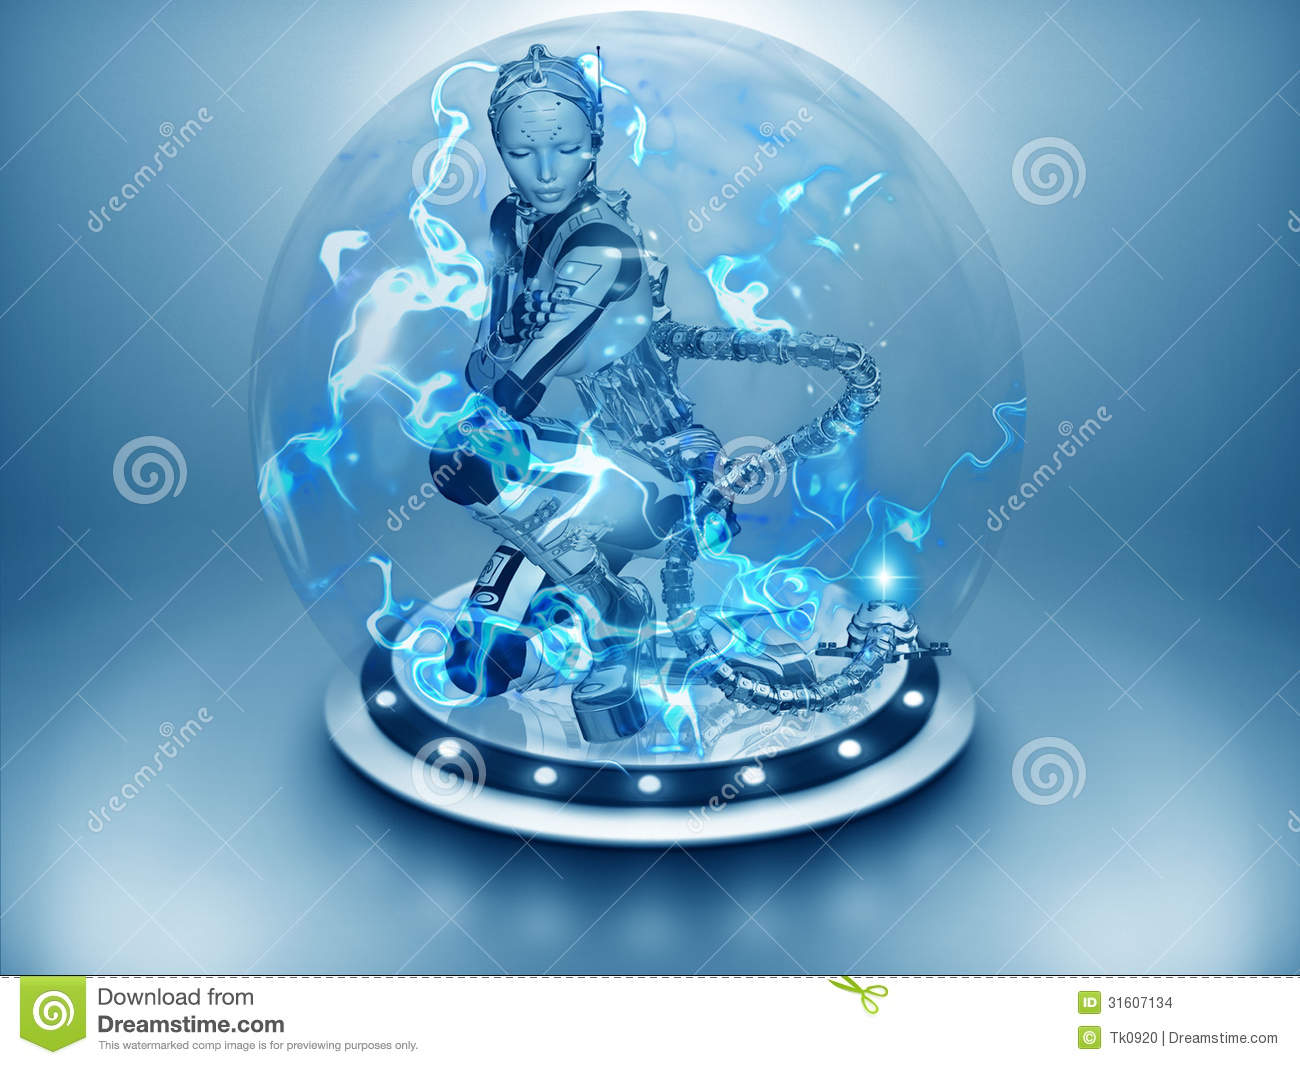 robot sphere technology advanced tech android power being energized advance powering clipart charging illustrations energy energize clip graphics preview